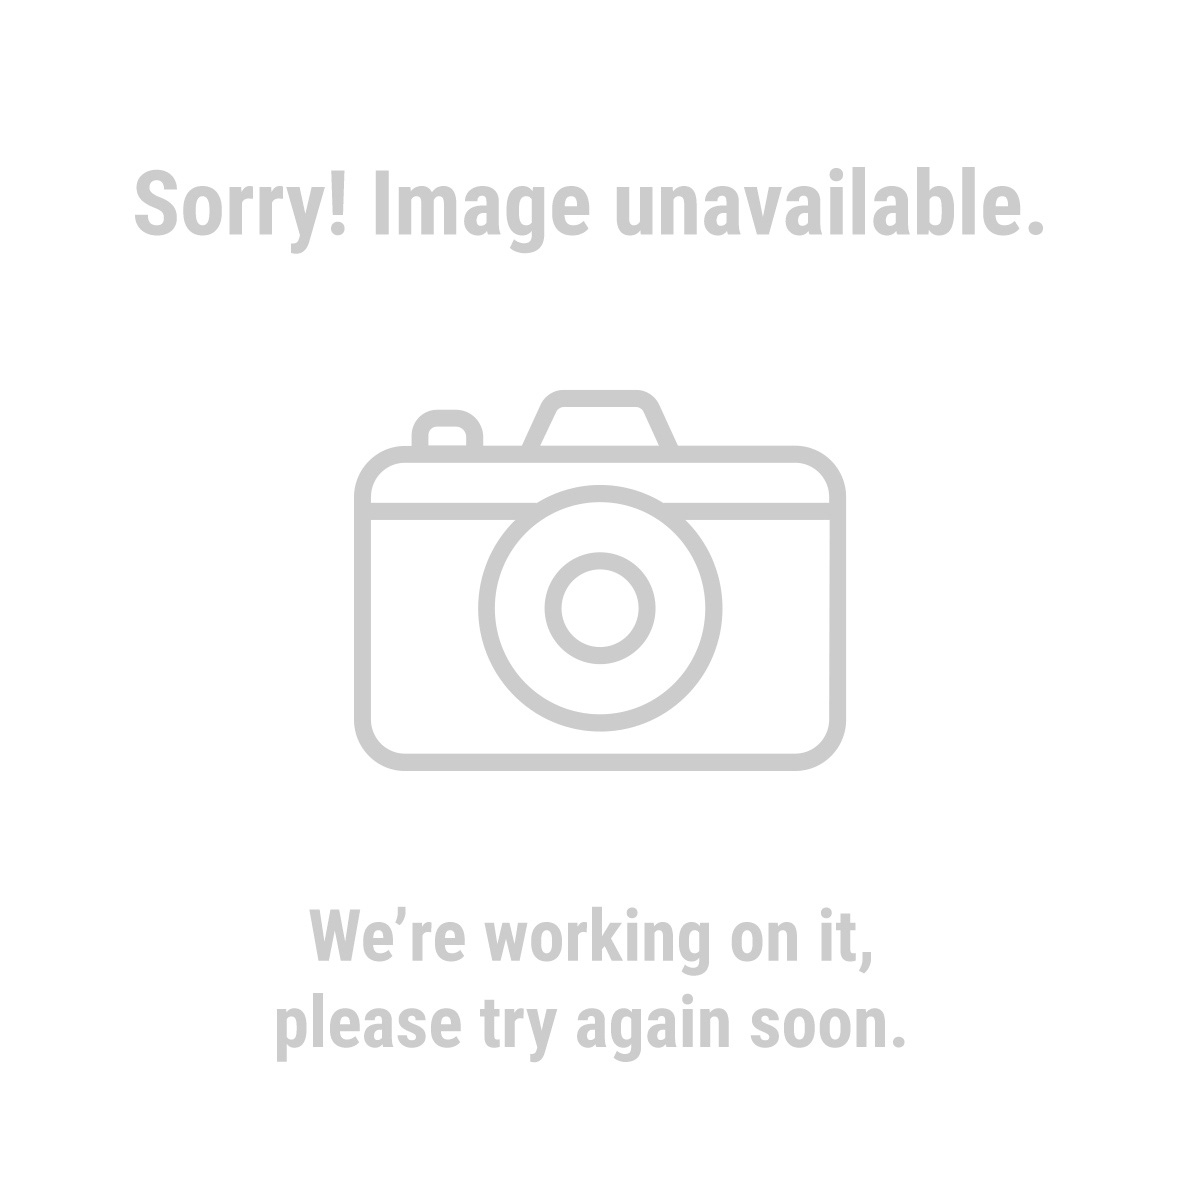 Western Safety 97076 Safety Spectacle Glasses